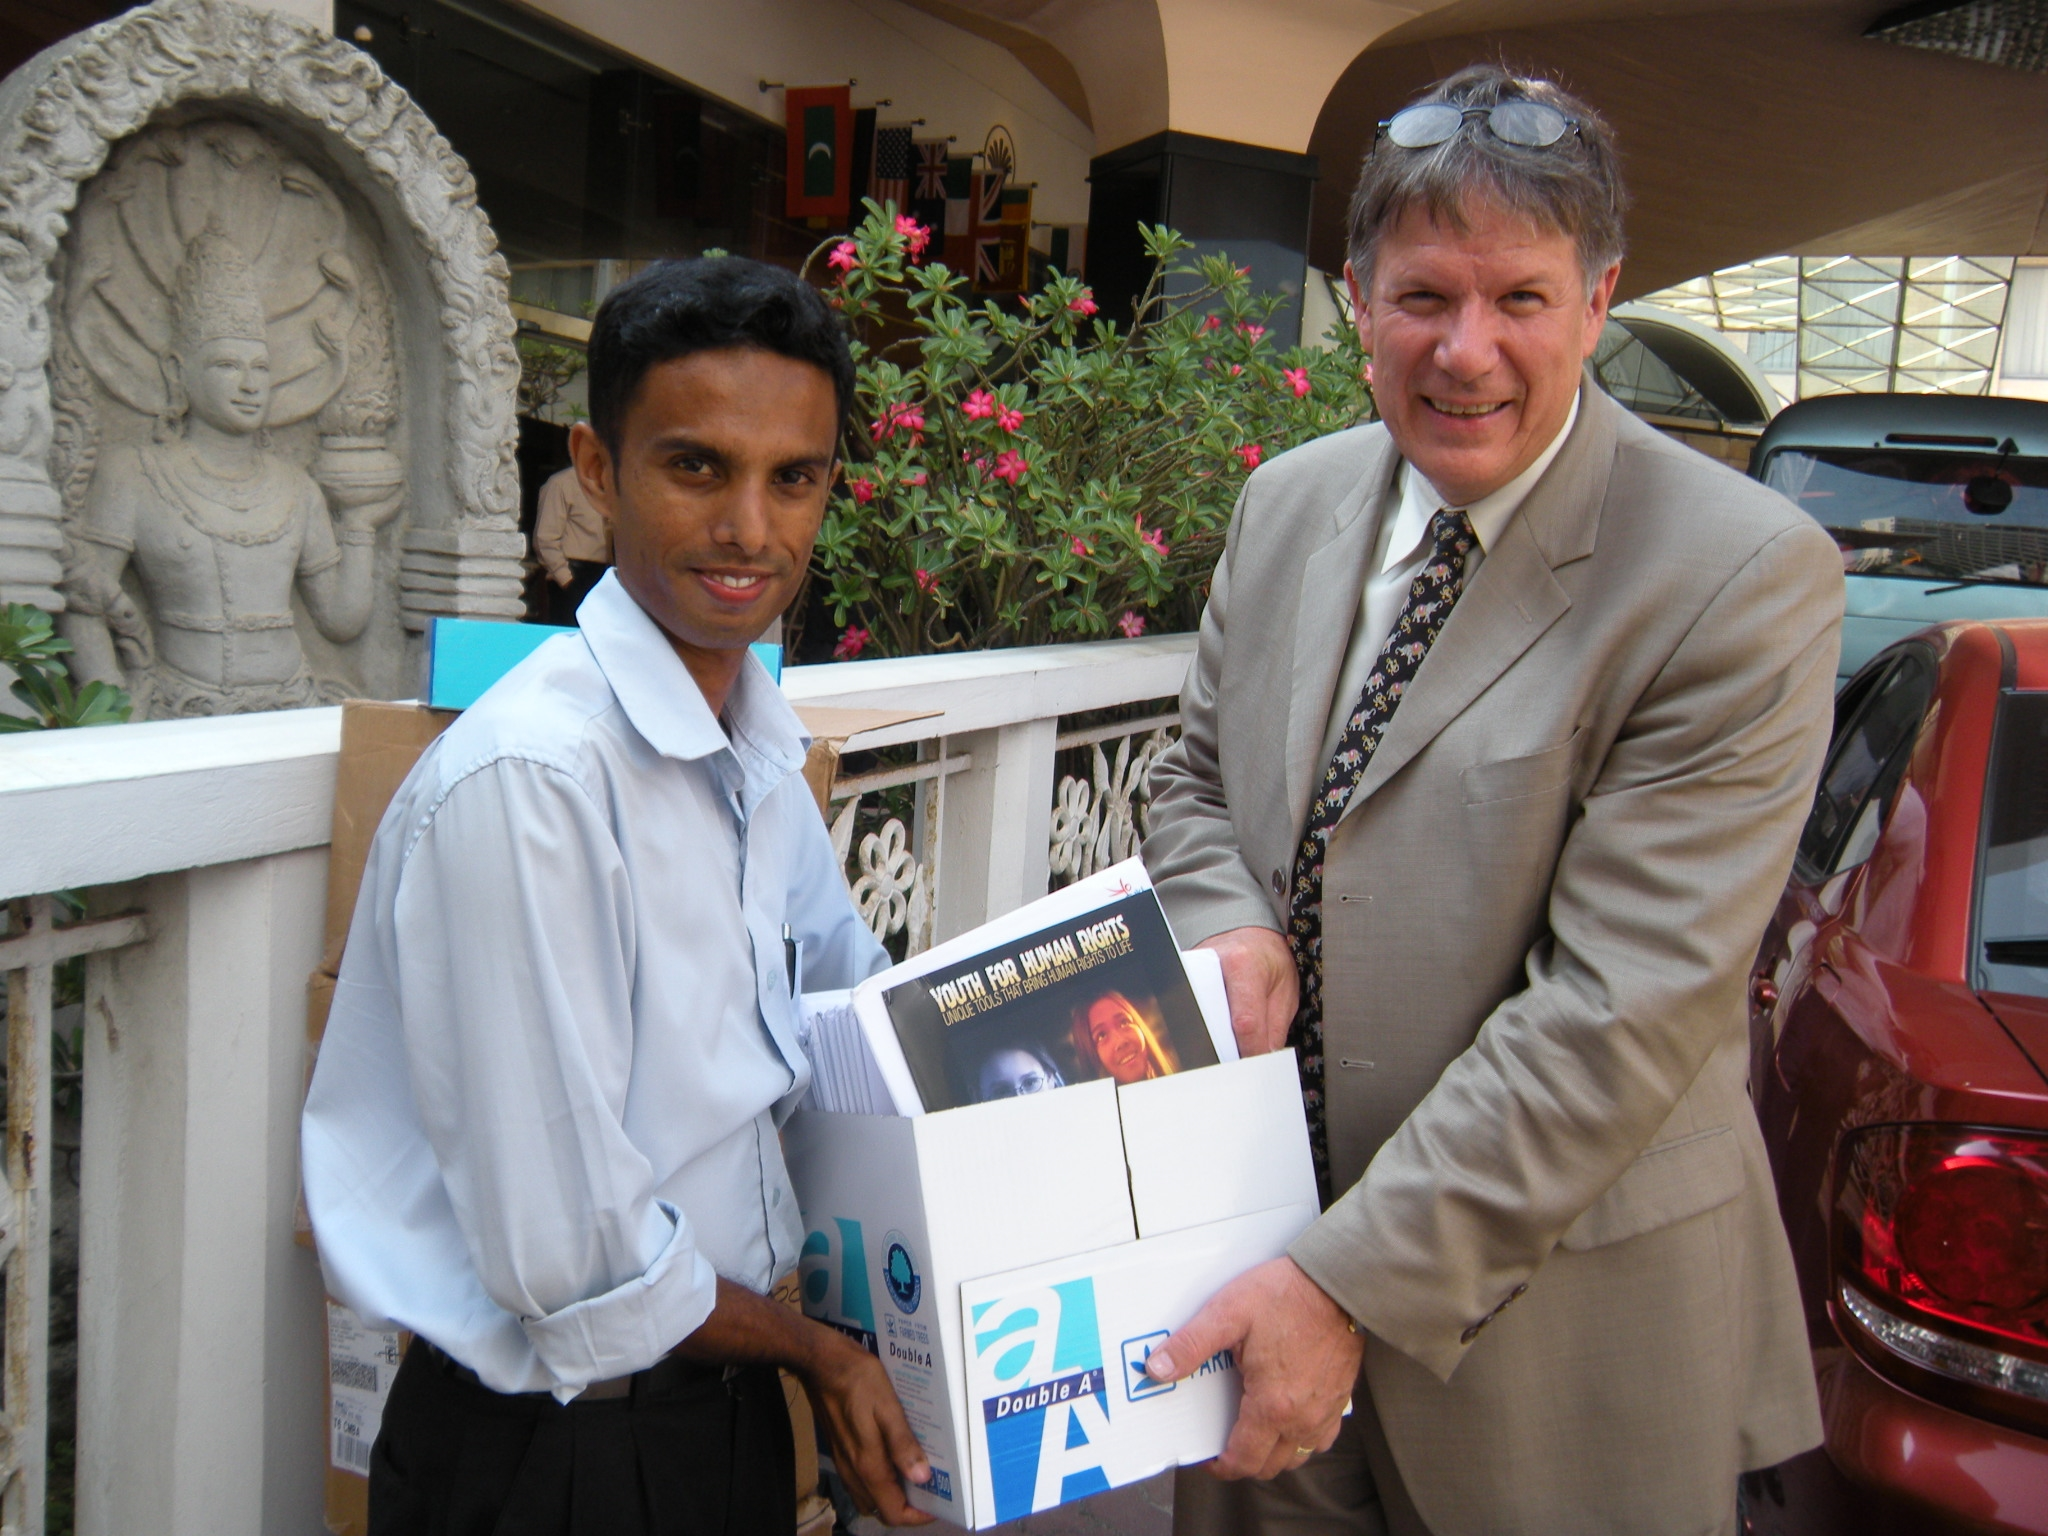 Life before FHFI - our Founder Bruce on the ground in Sri Lanka helping as a volunteer with a Human Rights education program in 2008